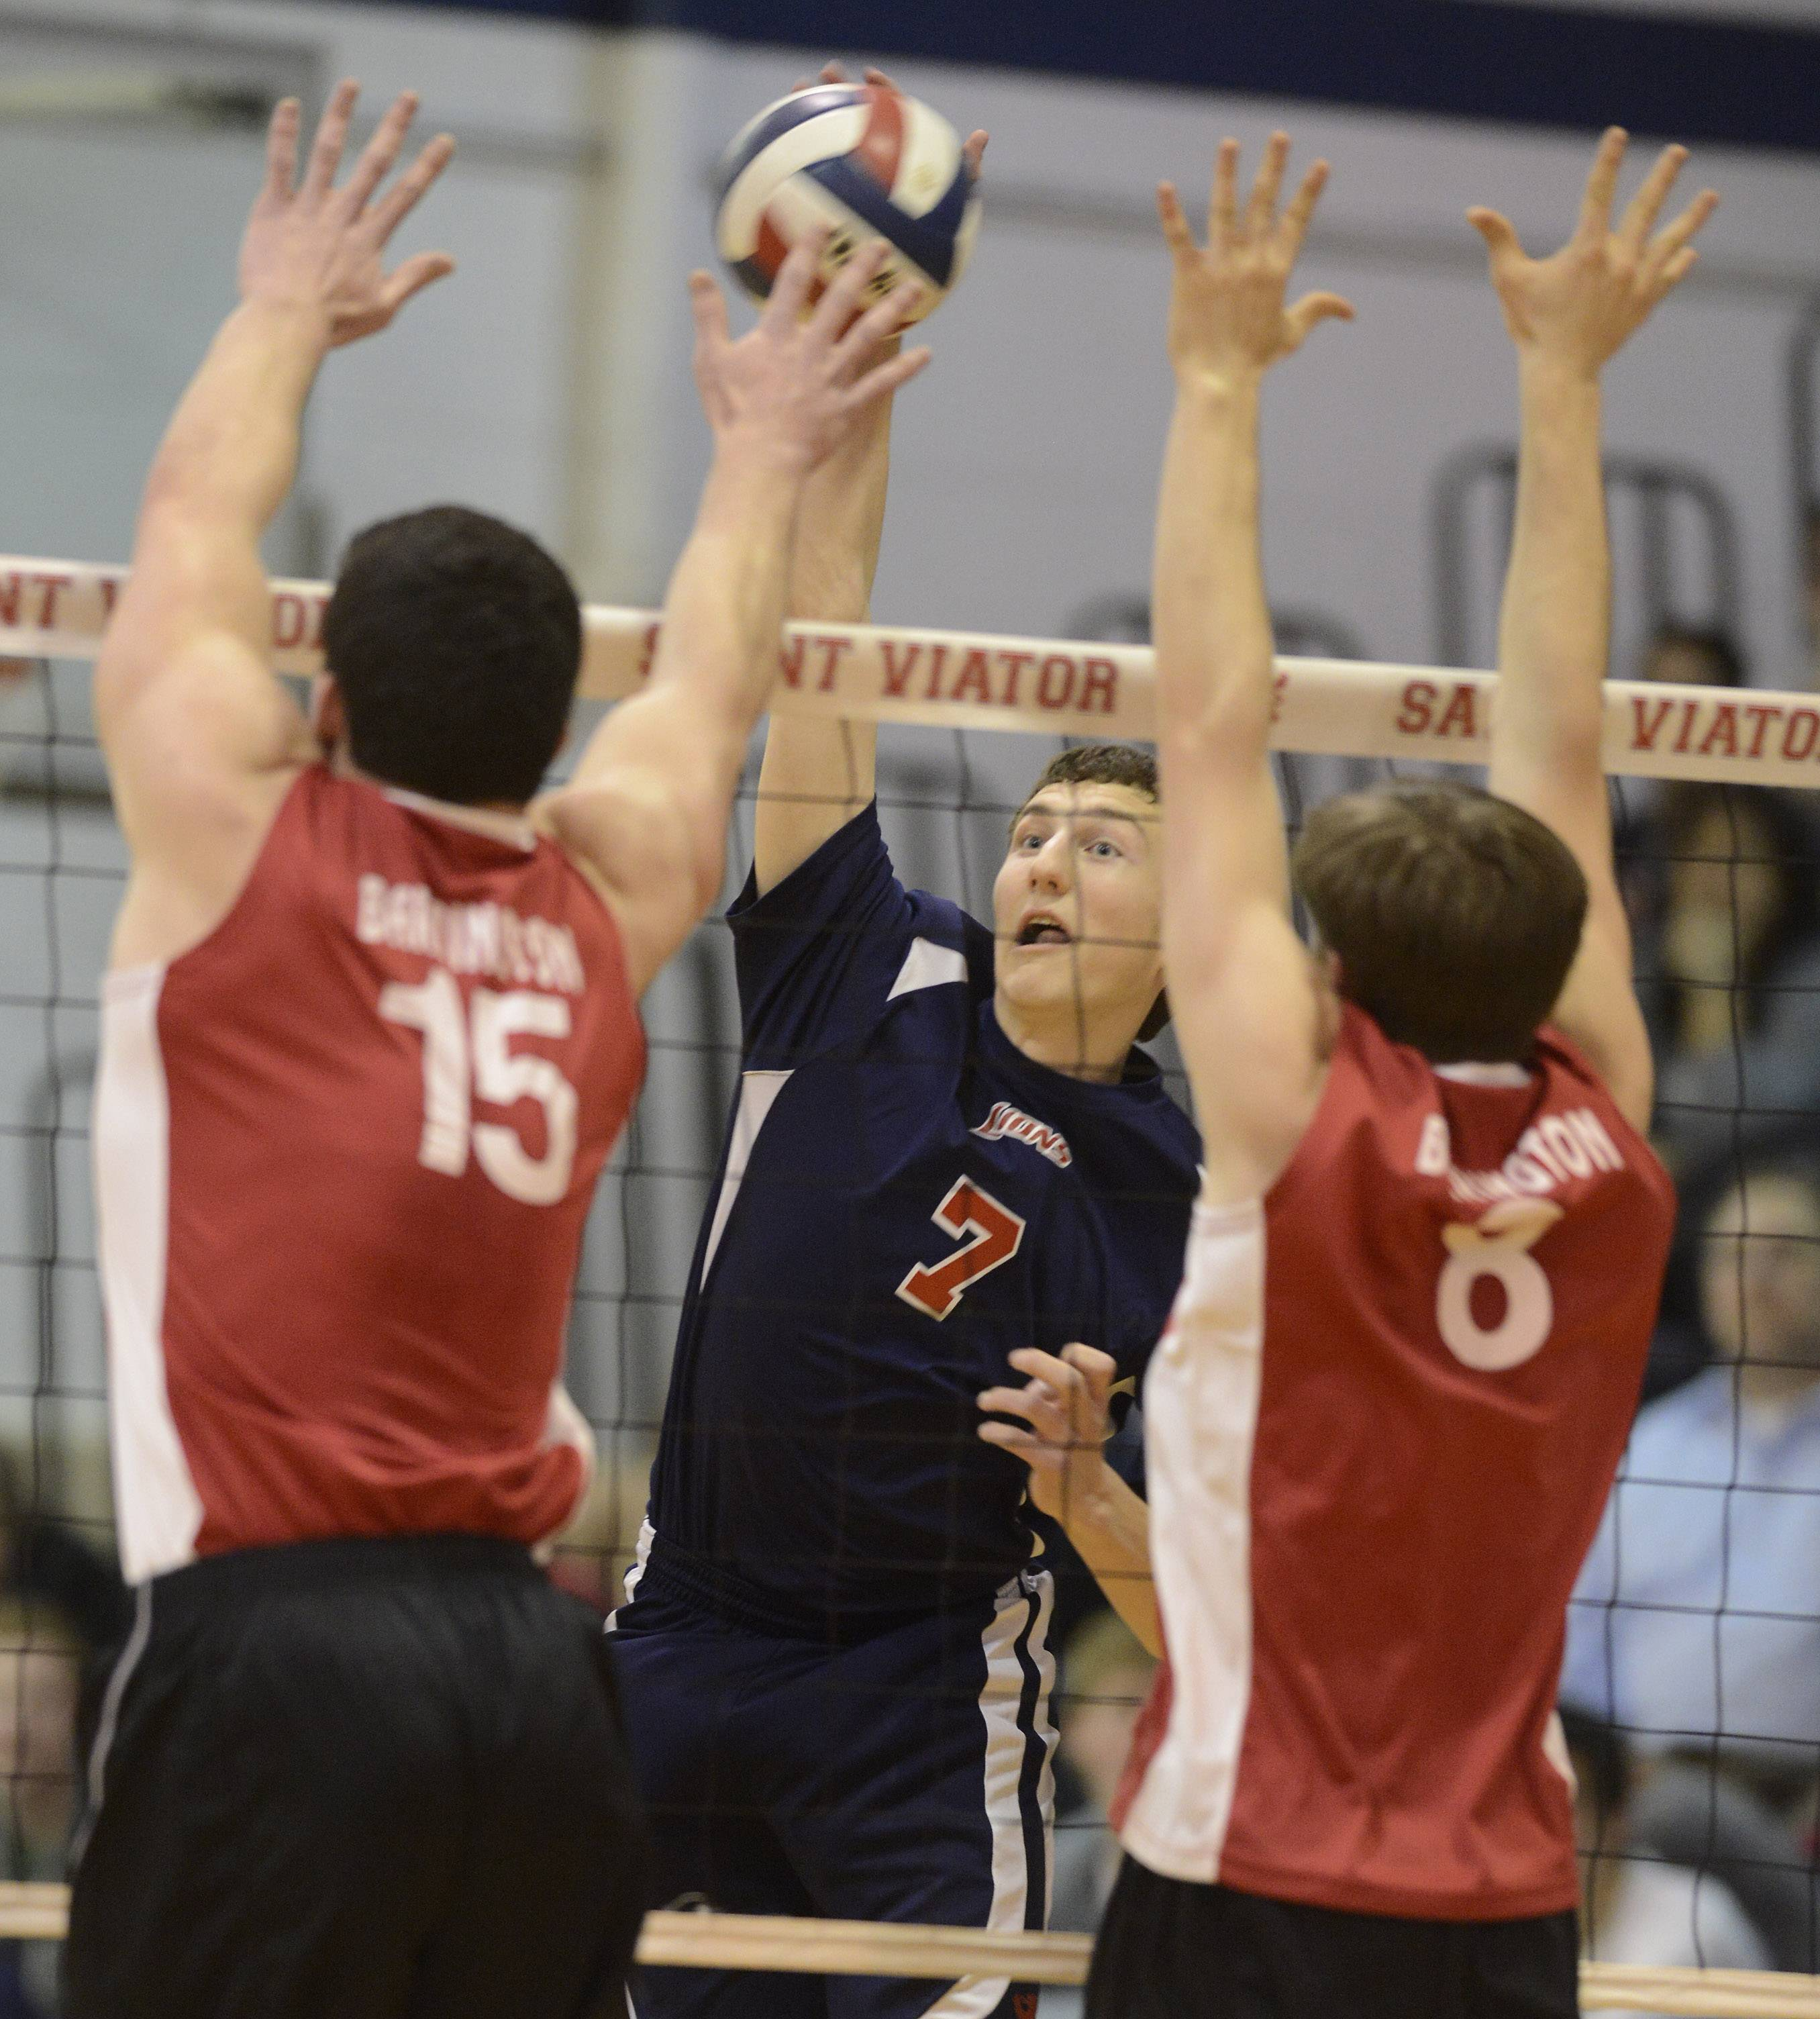 St. Viator's Ethan Wolf, middle, tries for a kill between Barrington's Colin Castagna, left, and Sean Frey during Tuesday's boys volleyball game in Arlington Heights.